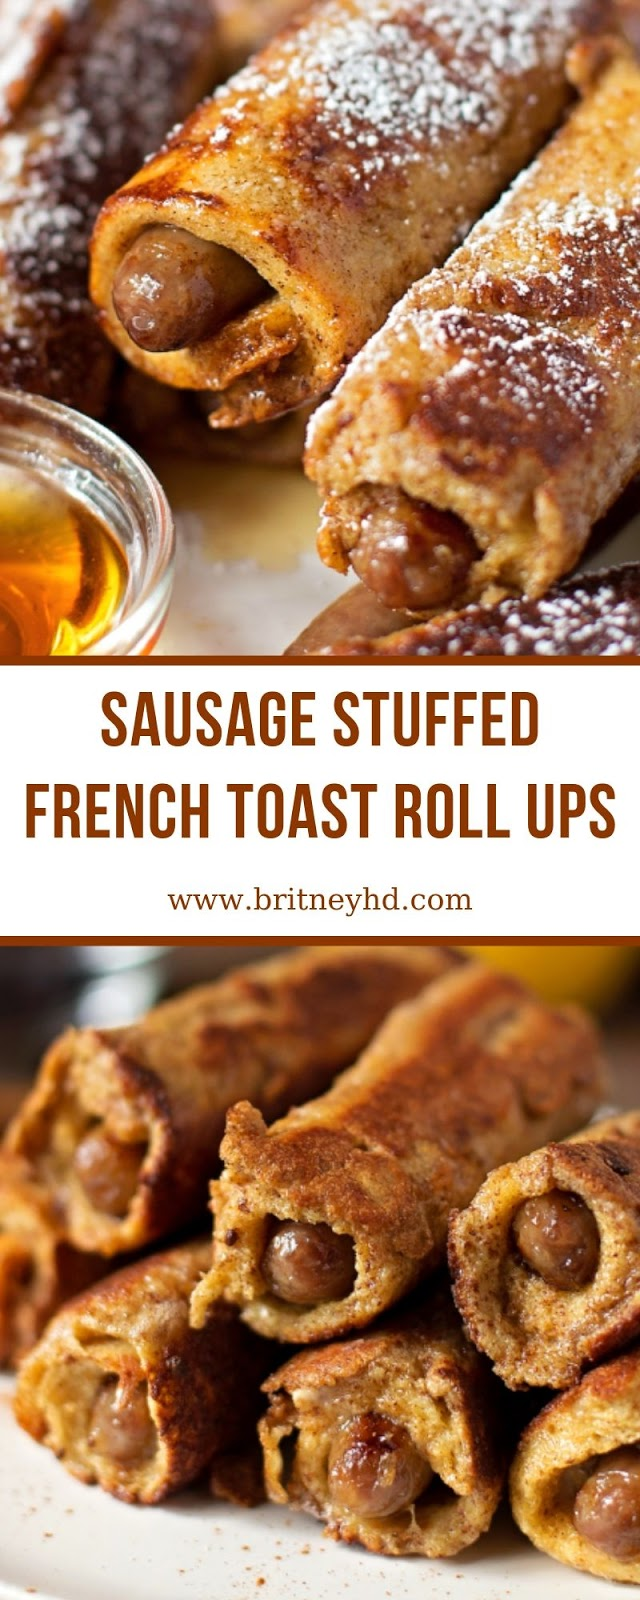 SAUSAGE STUFFED FRENCH TOAST ROLL UPS